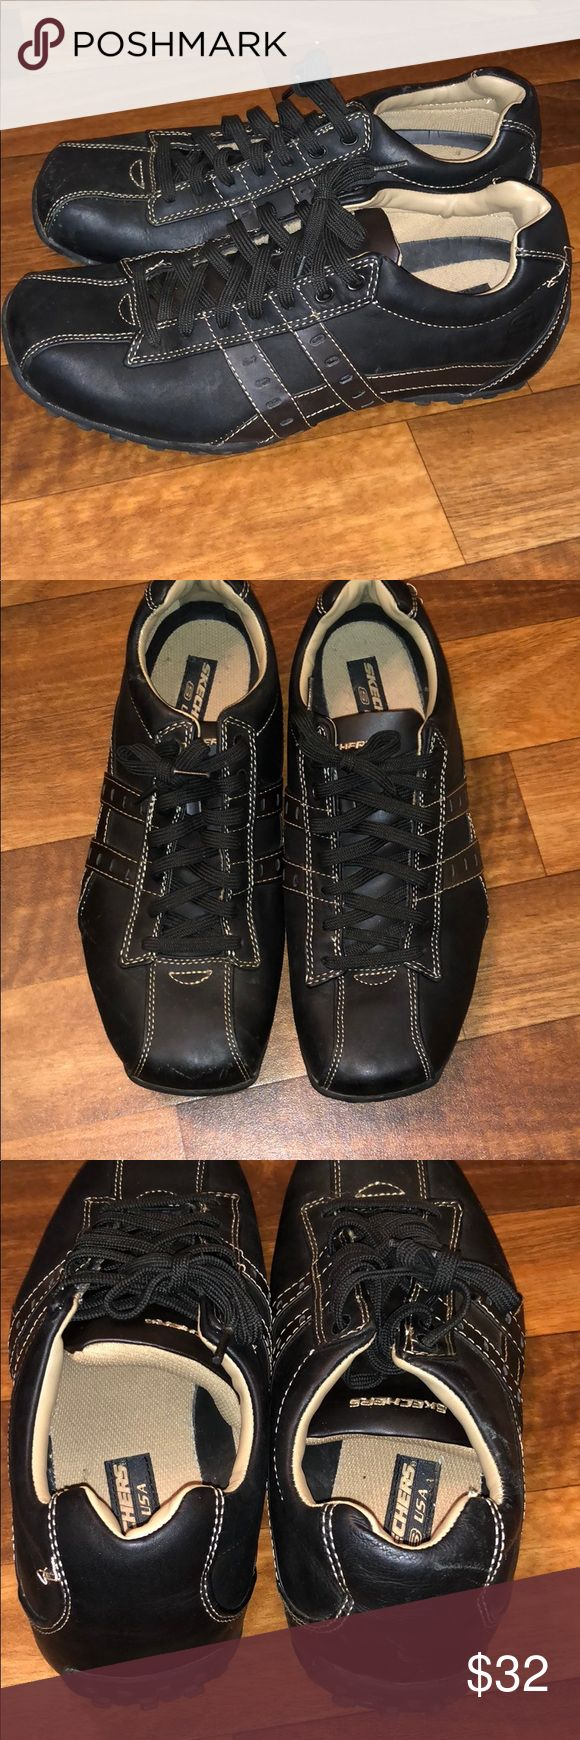 Men's Sketchers Sneakers Black and leather. Worn once. In amazing condition. Couple scuffs in the front from being pulled in the closet with other 👟. Skechers Shoes Sneakers